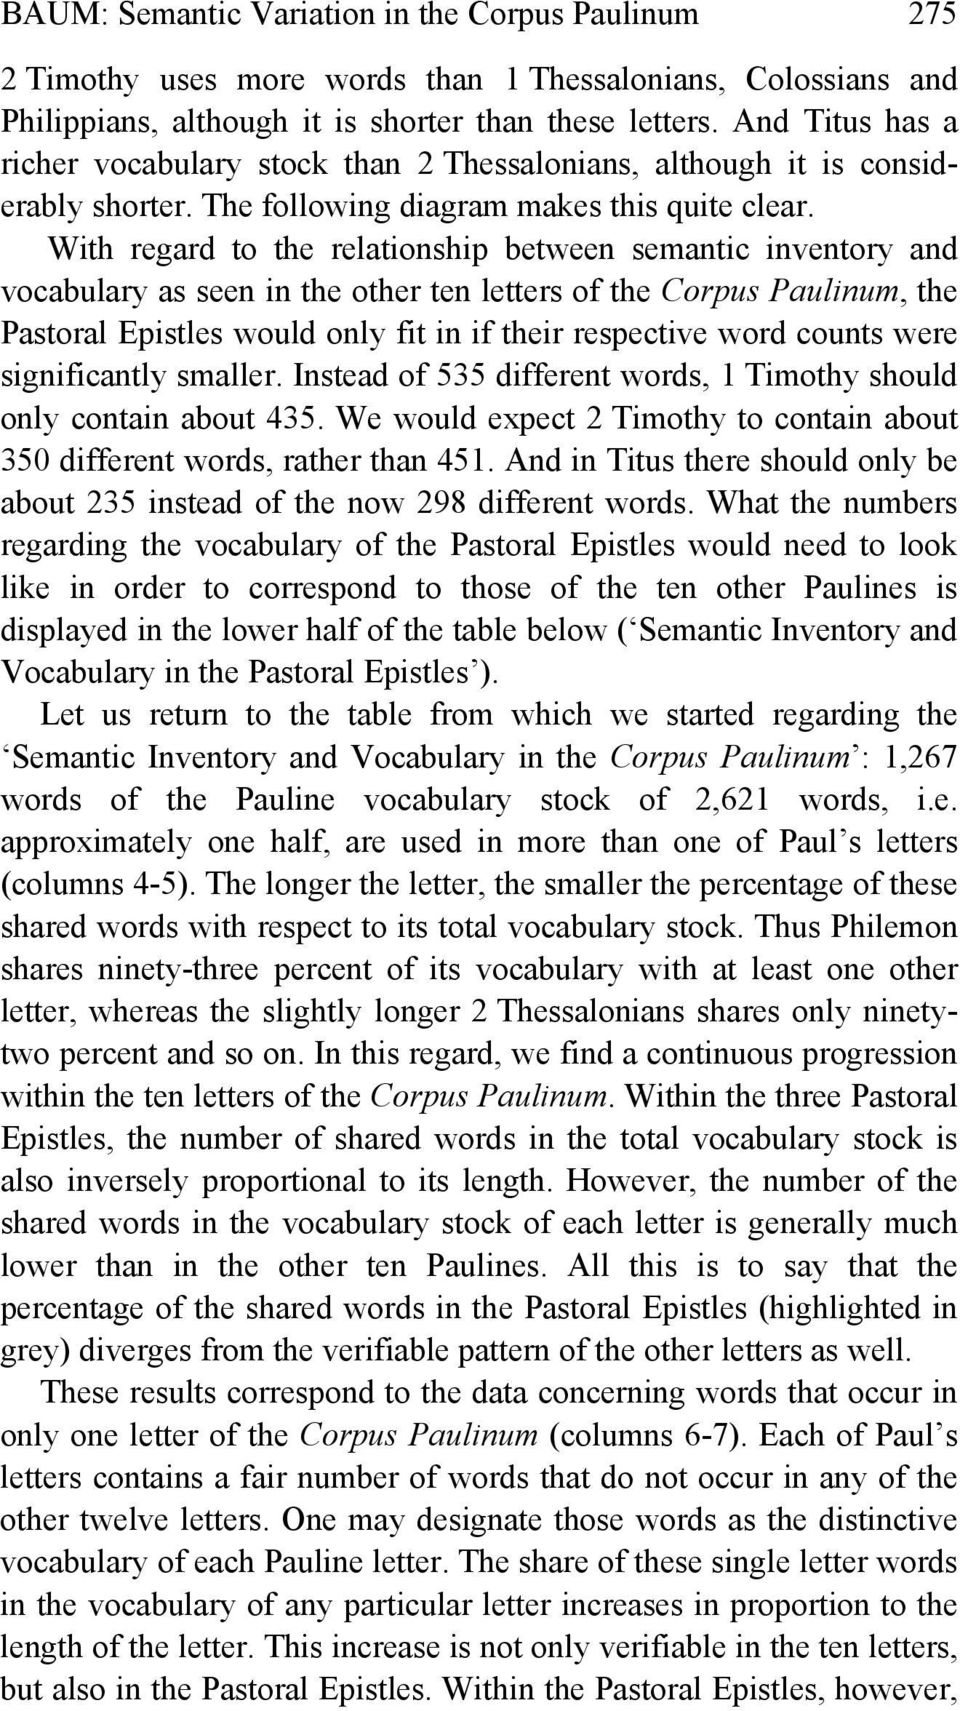 With regard to the relationship between semantic inventory and vocabulary as seen in the other ten letters of the Corpus Paulinum, the Pastoral Epistles would only fit in if their respective word